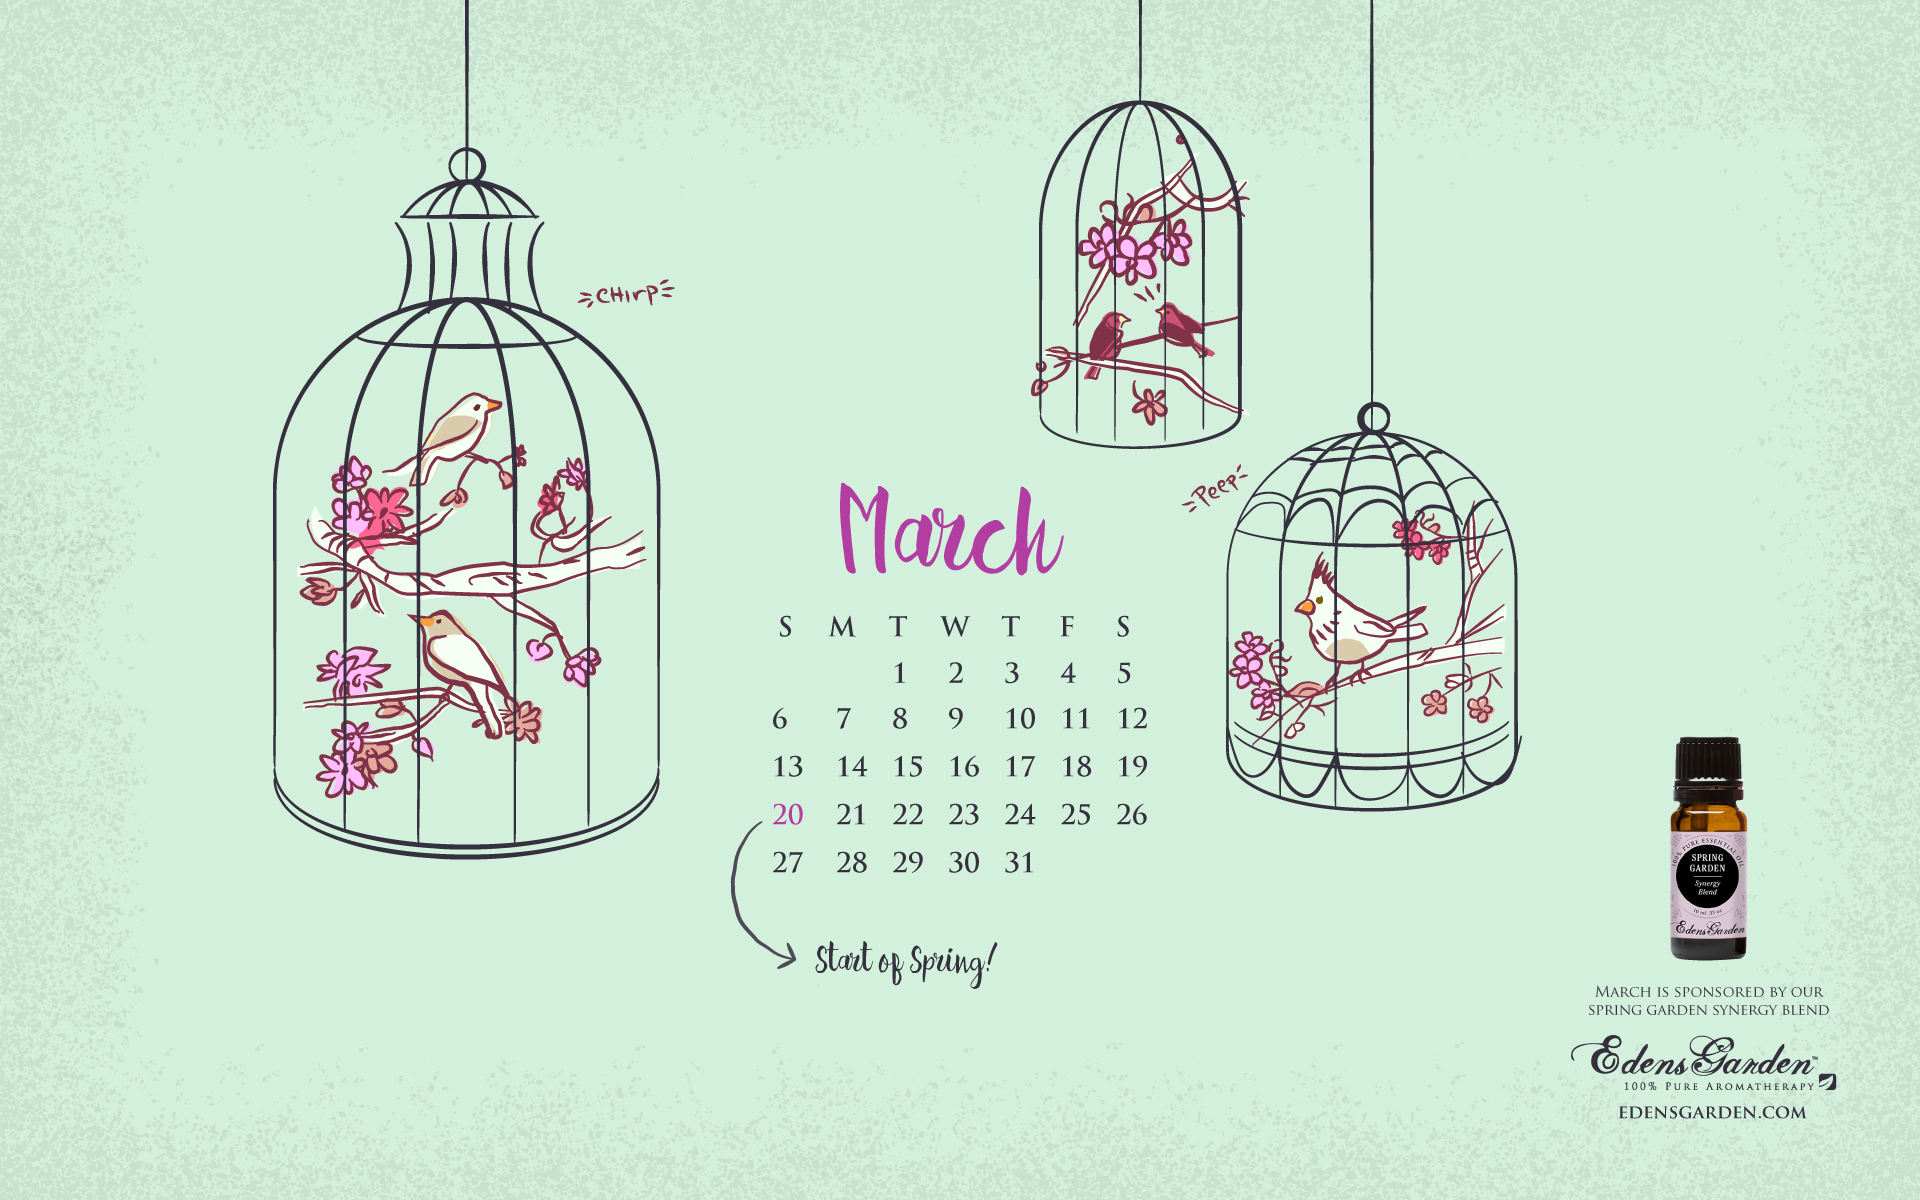 March calendar wallpaper   SF Wallpaper 1920x1200